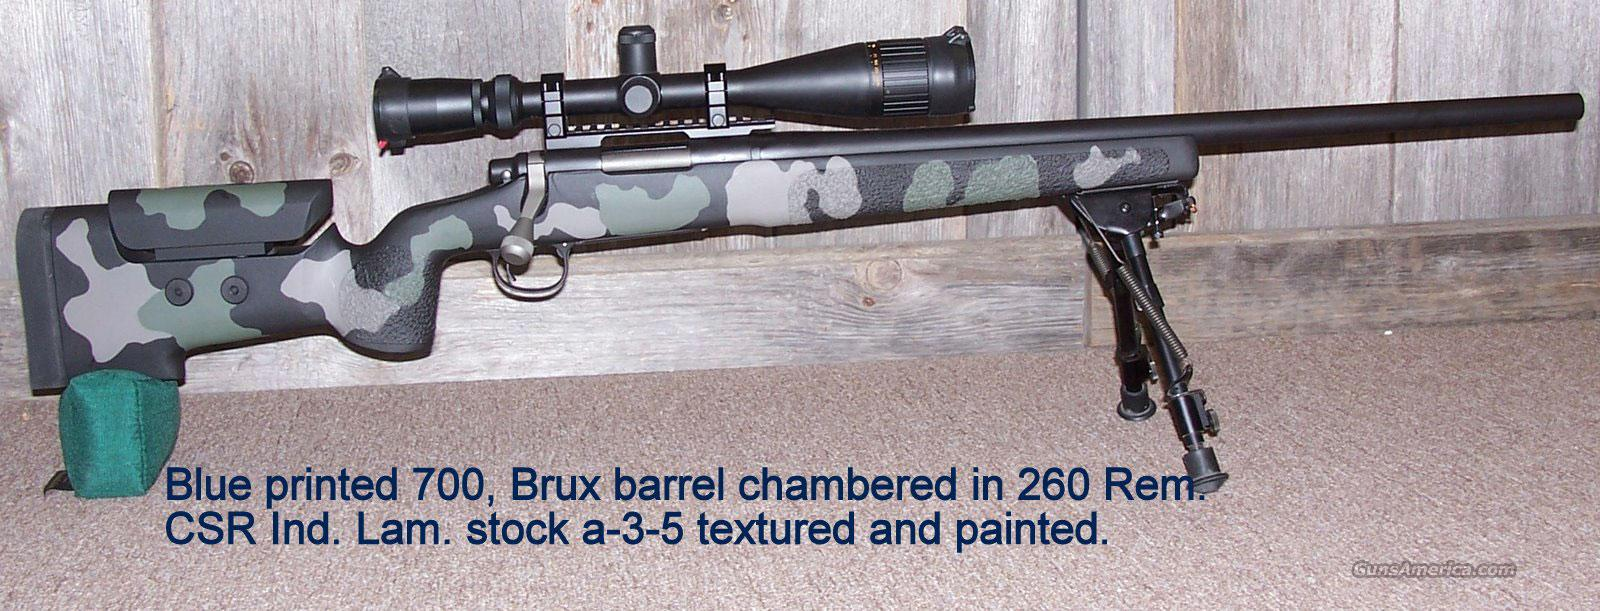 Remington 700 custom  Guns > Rifles > Remington Rifles - Modern > Model 700 > Tactical